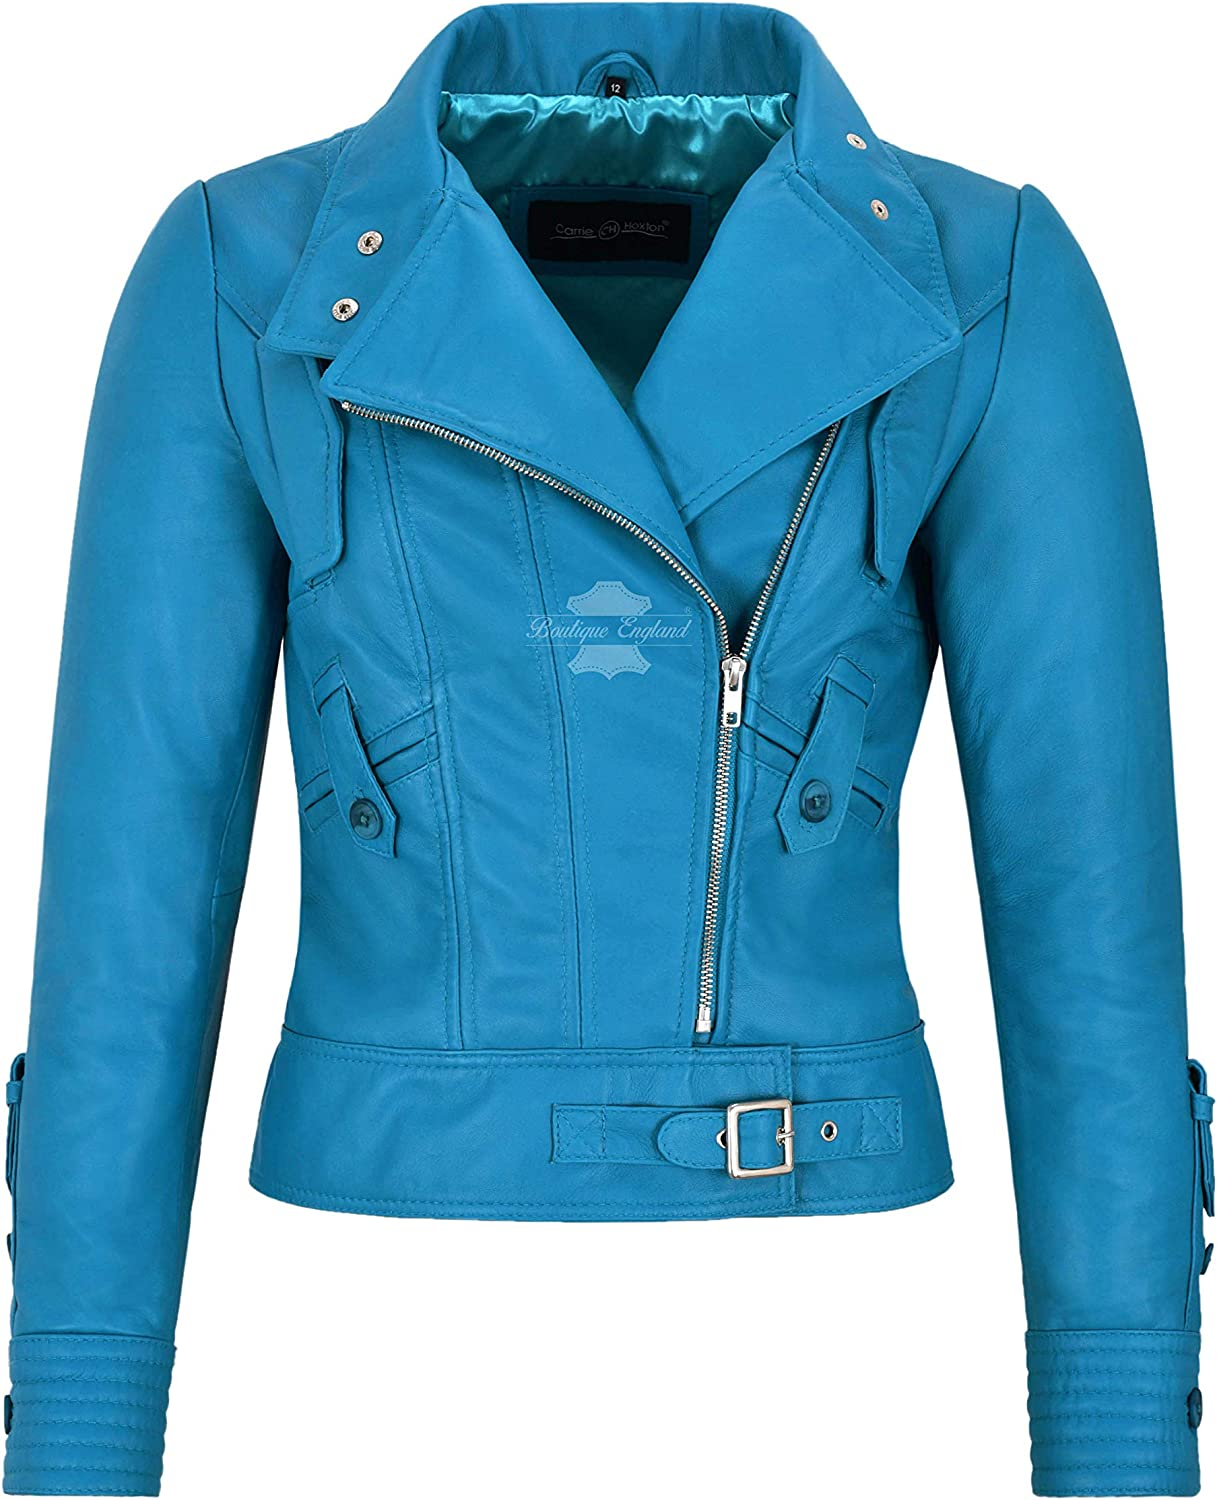 Carrie CH Hoxton Ladies Supermodel Biker Jacket Electric bluee Light Soft Leather Leather 4110